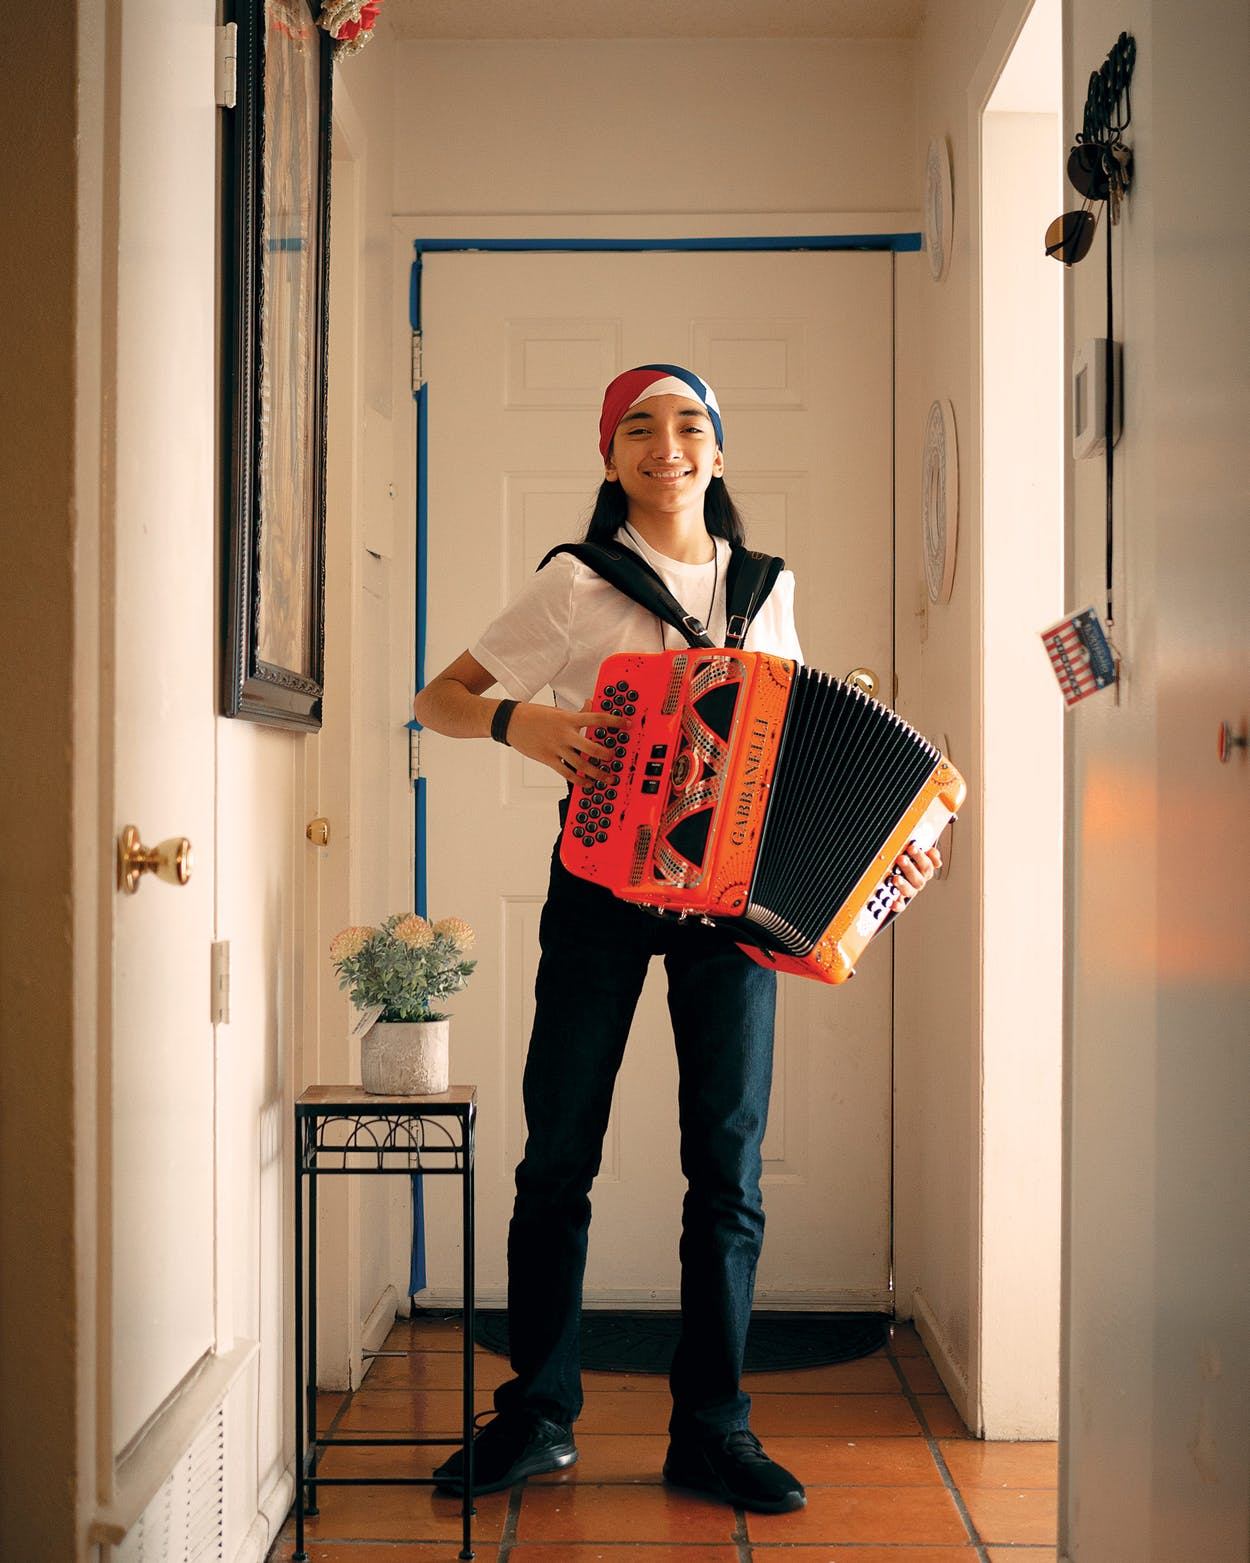 Christopher Ramirez with his accordion at his home on May 5, 2021.